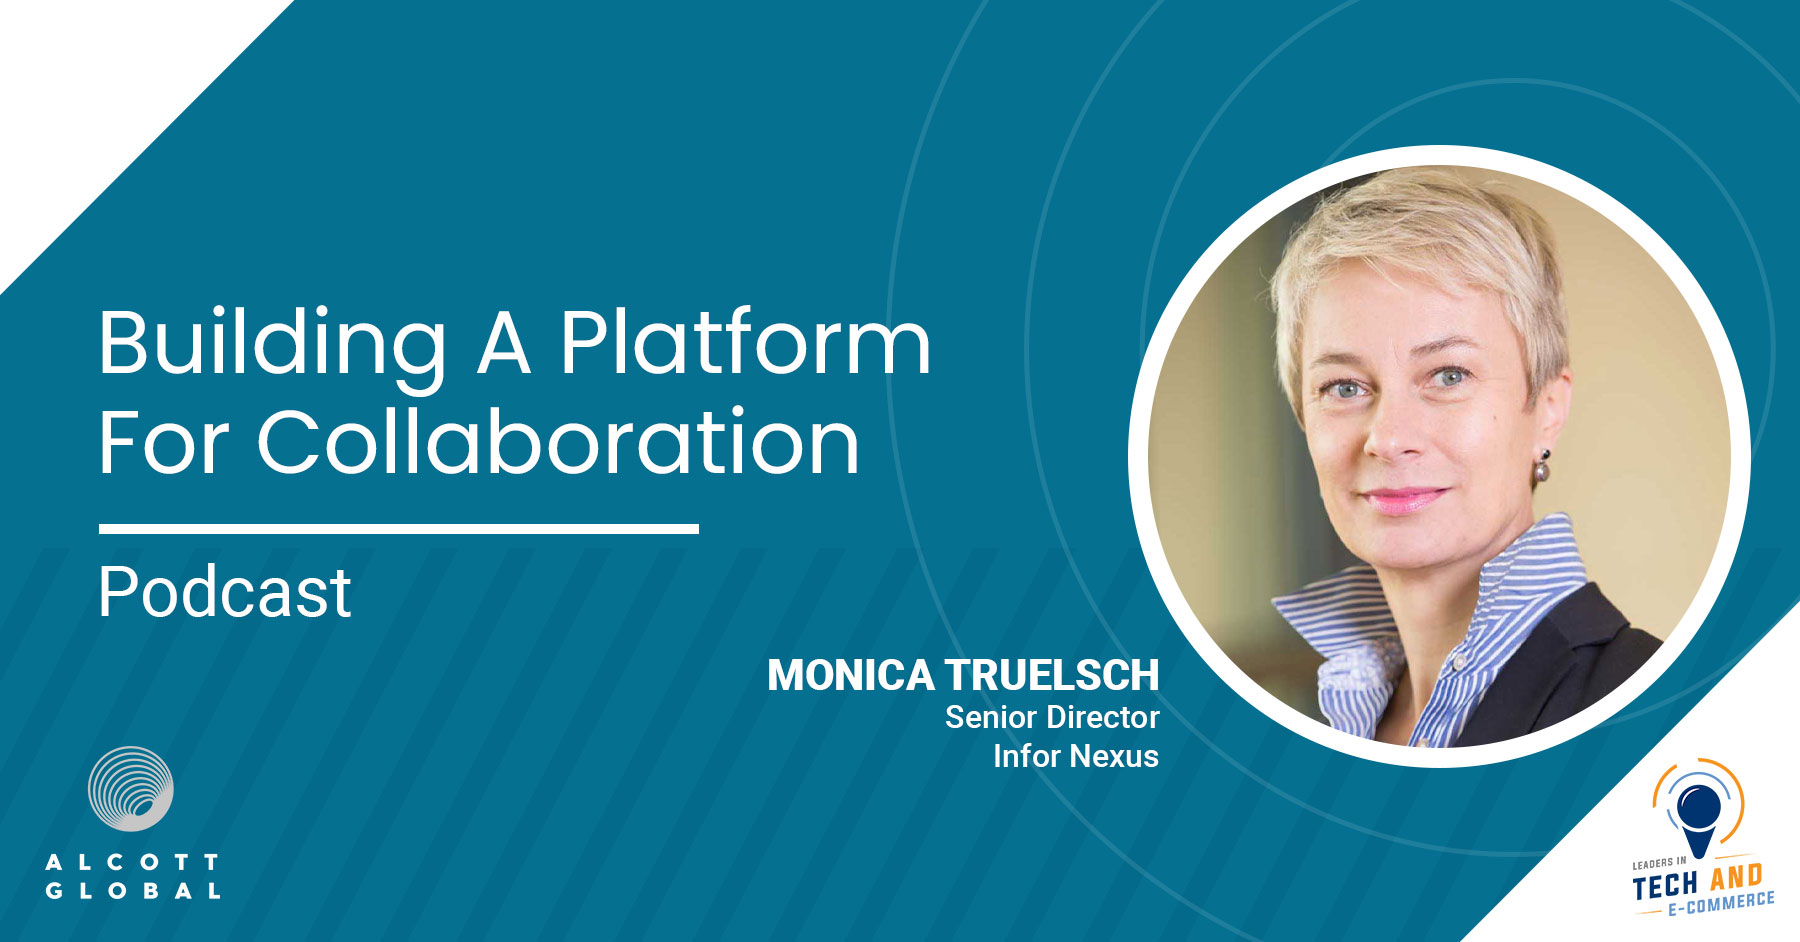 Building a Platform for Collaboration with Monica Truelsch Senior Director At Infor Nexus Featured Image